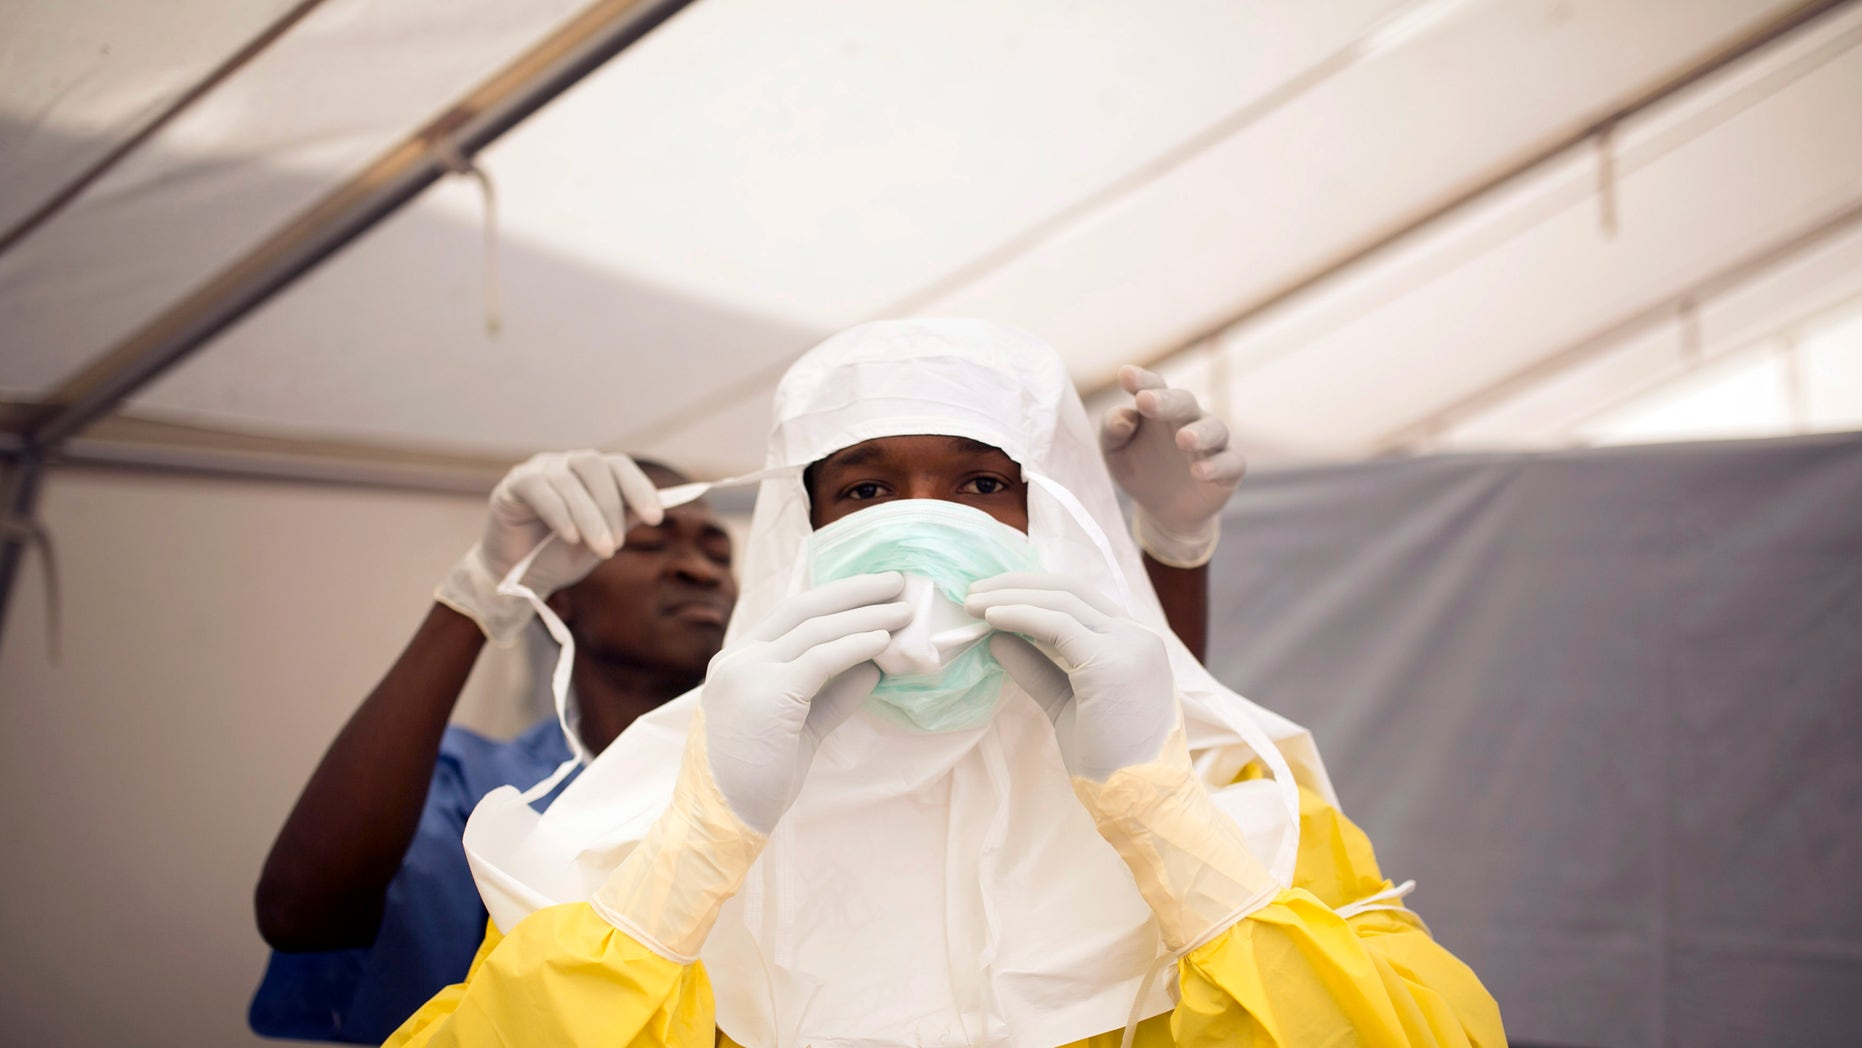 Health workers put on protective gear before entering a quarantine zone at a Red Cross facility in the town of Koidu, Kono district in Eastern Sierra Leone December 19, 2014. REUTERS/Baz Ratner